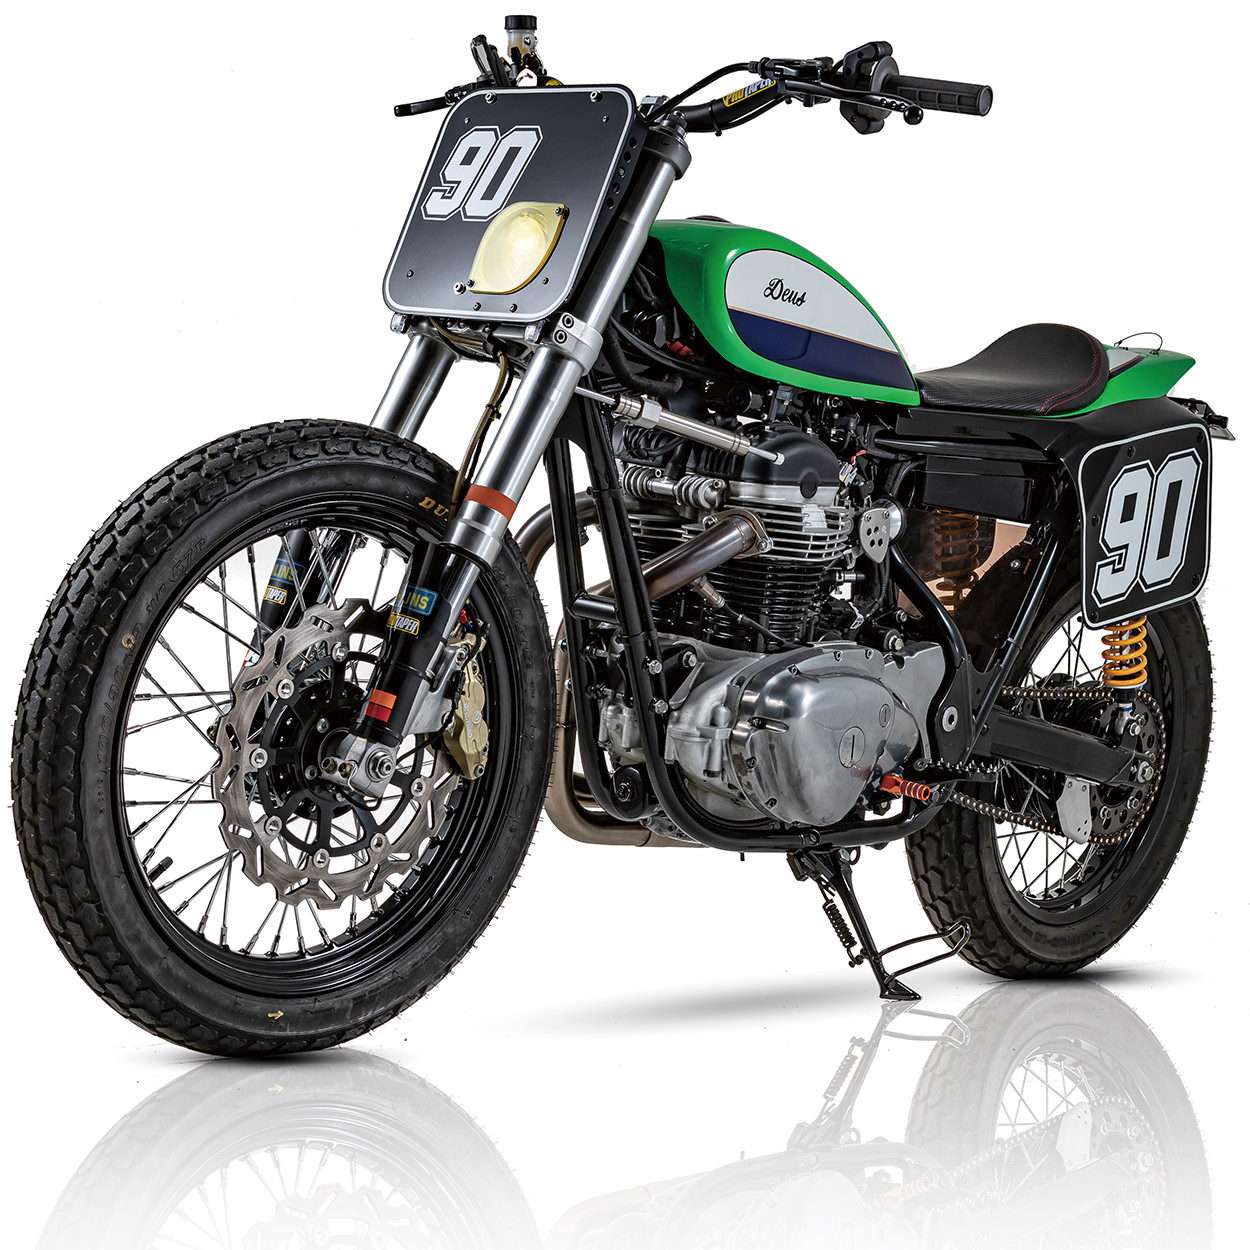 Kawasaki W800 street tracker by Deus and Crazy Garage